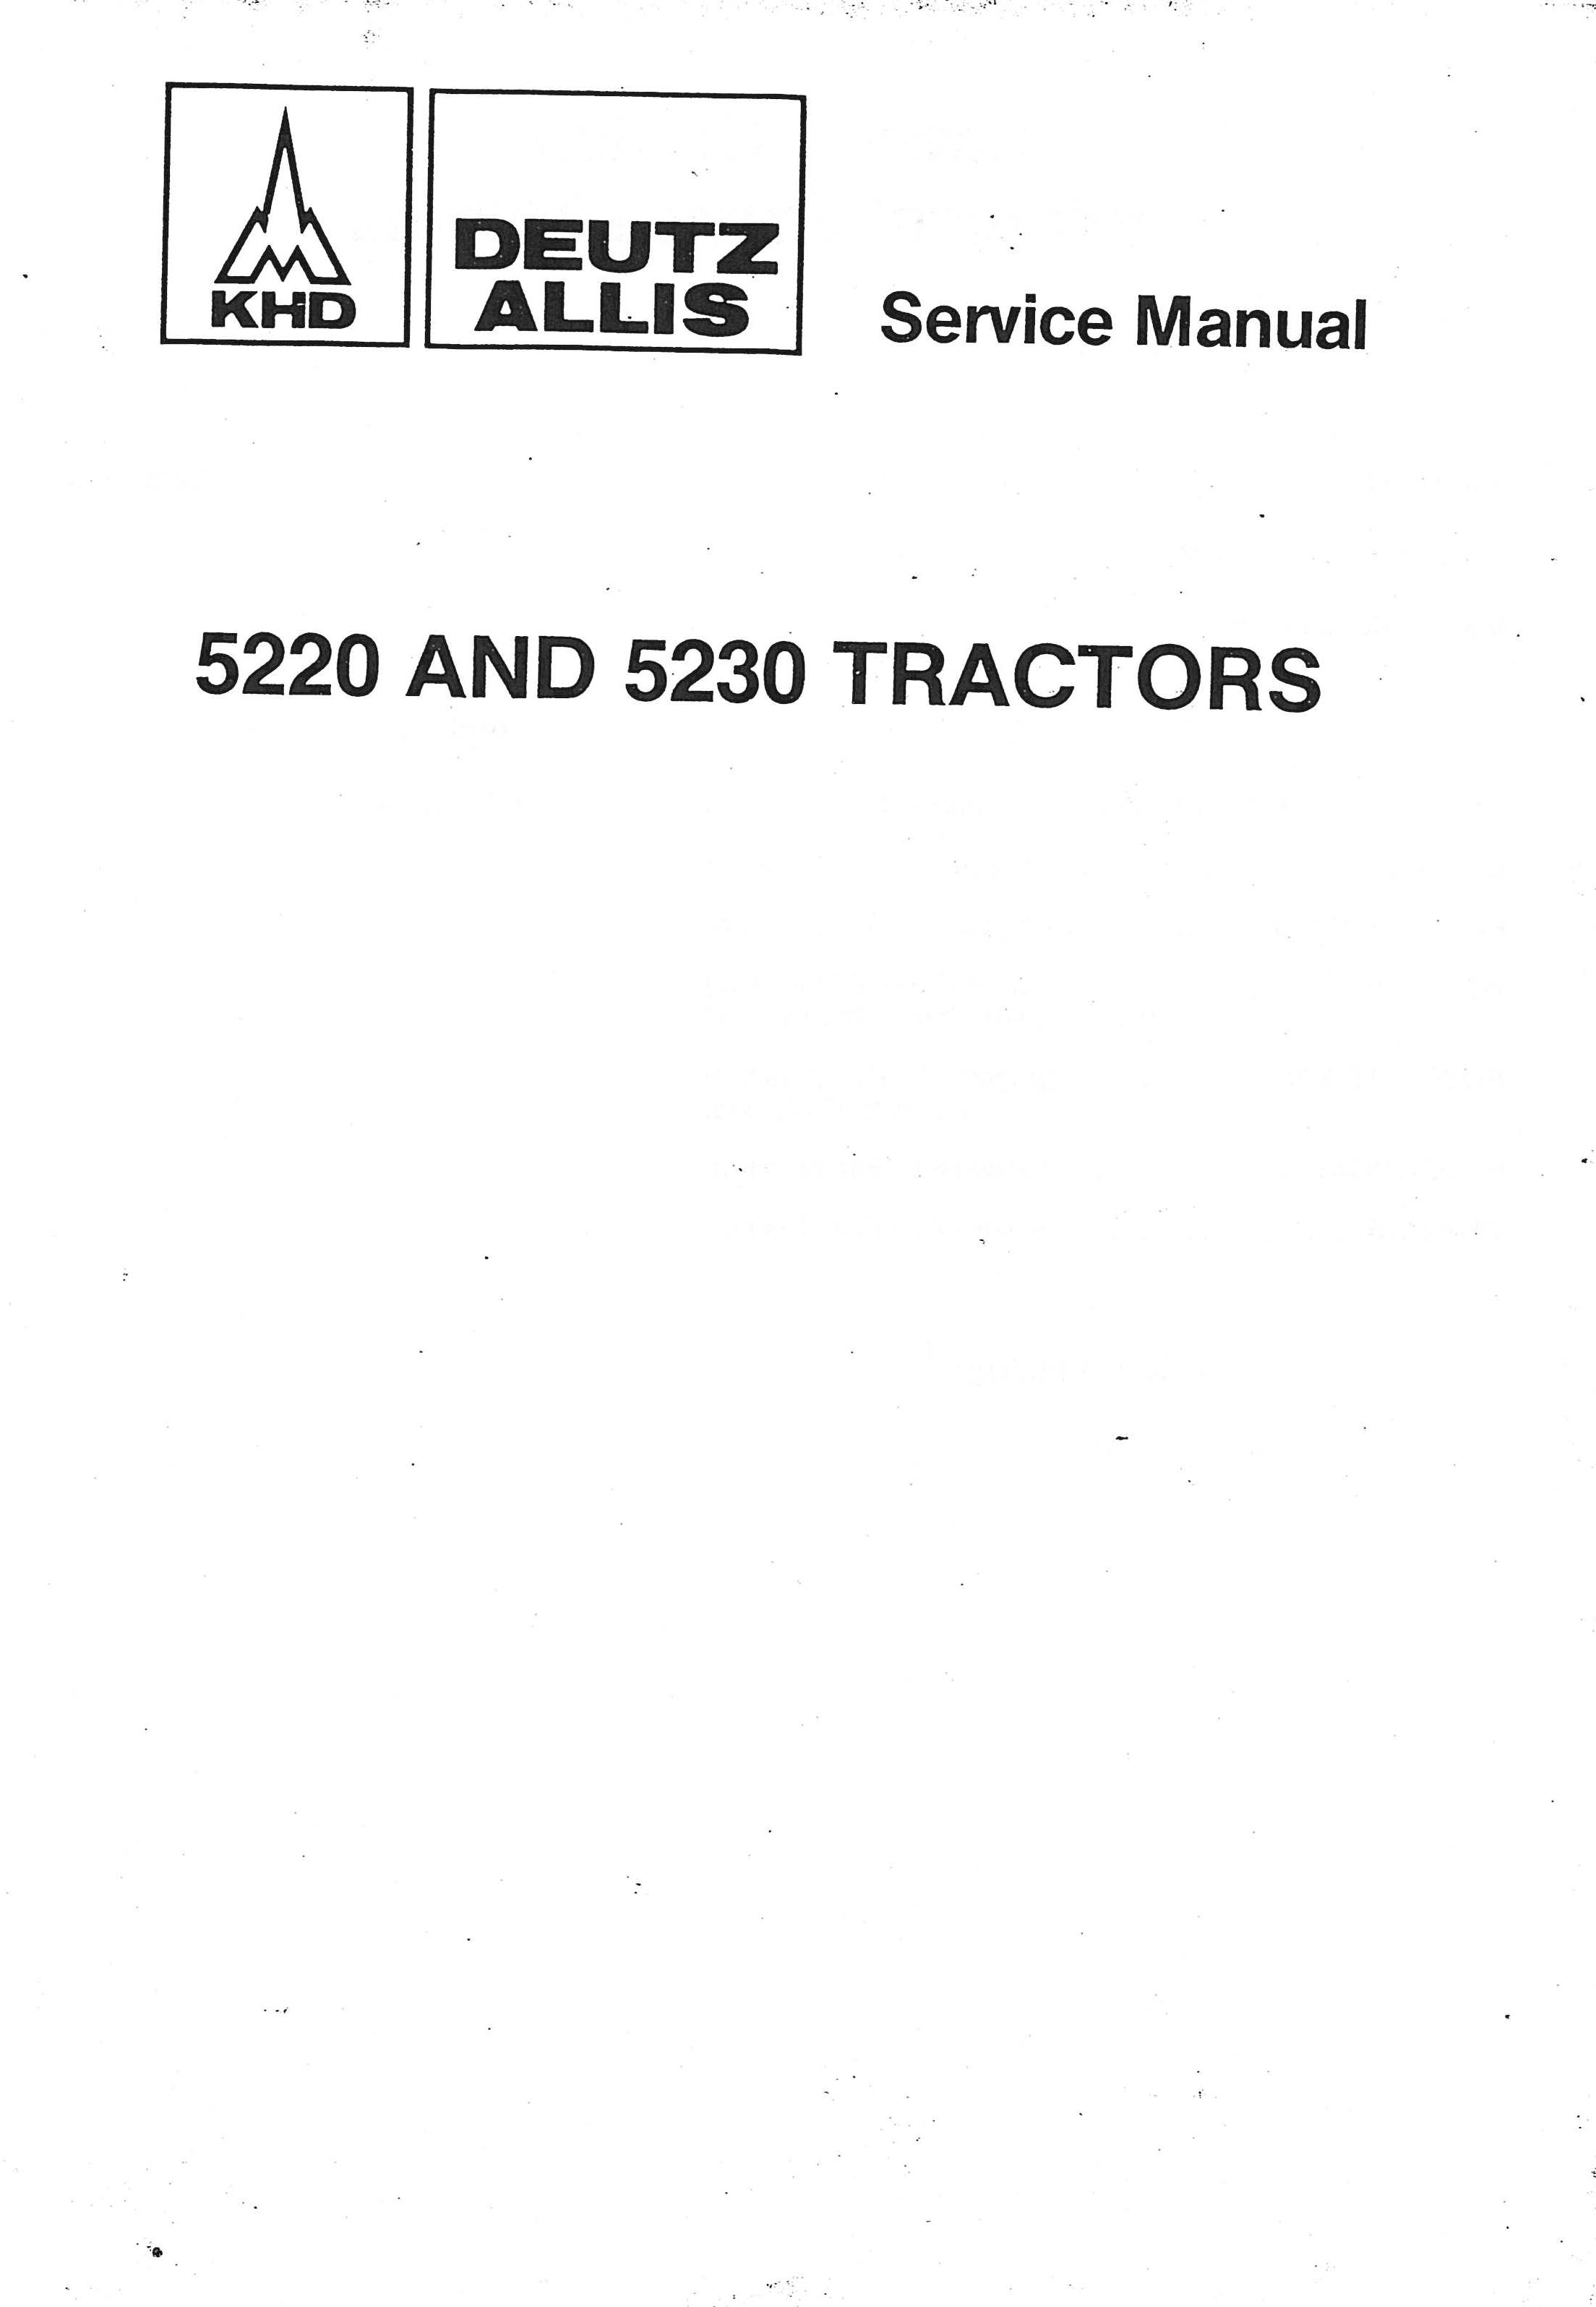 Allis Chalmers Hd 5 Wiring Diagram 34 Images B Harness Tractor Manuals Repair Online Deutz 5220 5230 Diesel 2 And 4wd Synchro Lawn Garden Service Manual Page 1